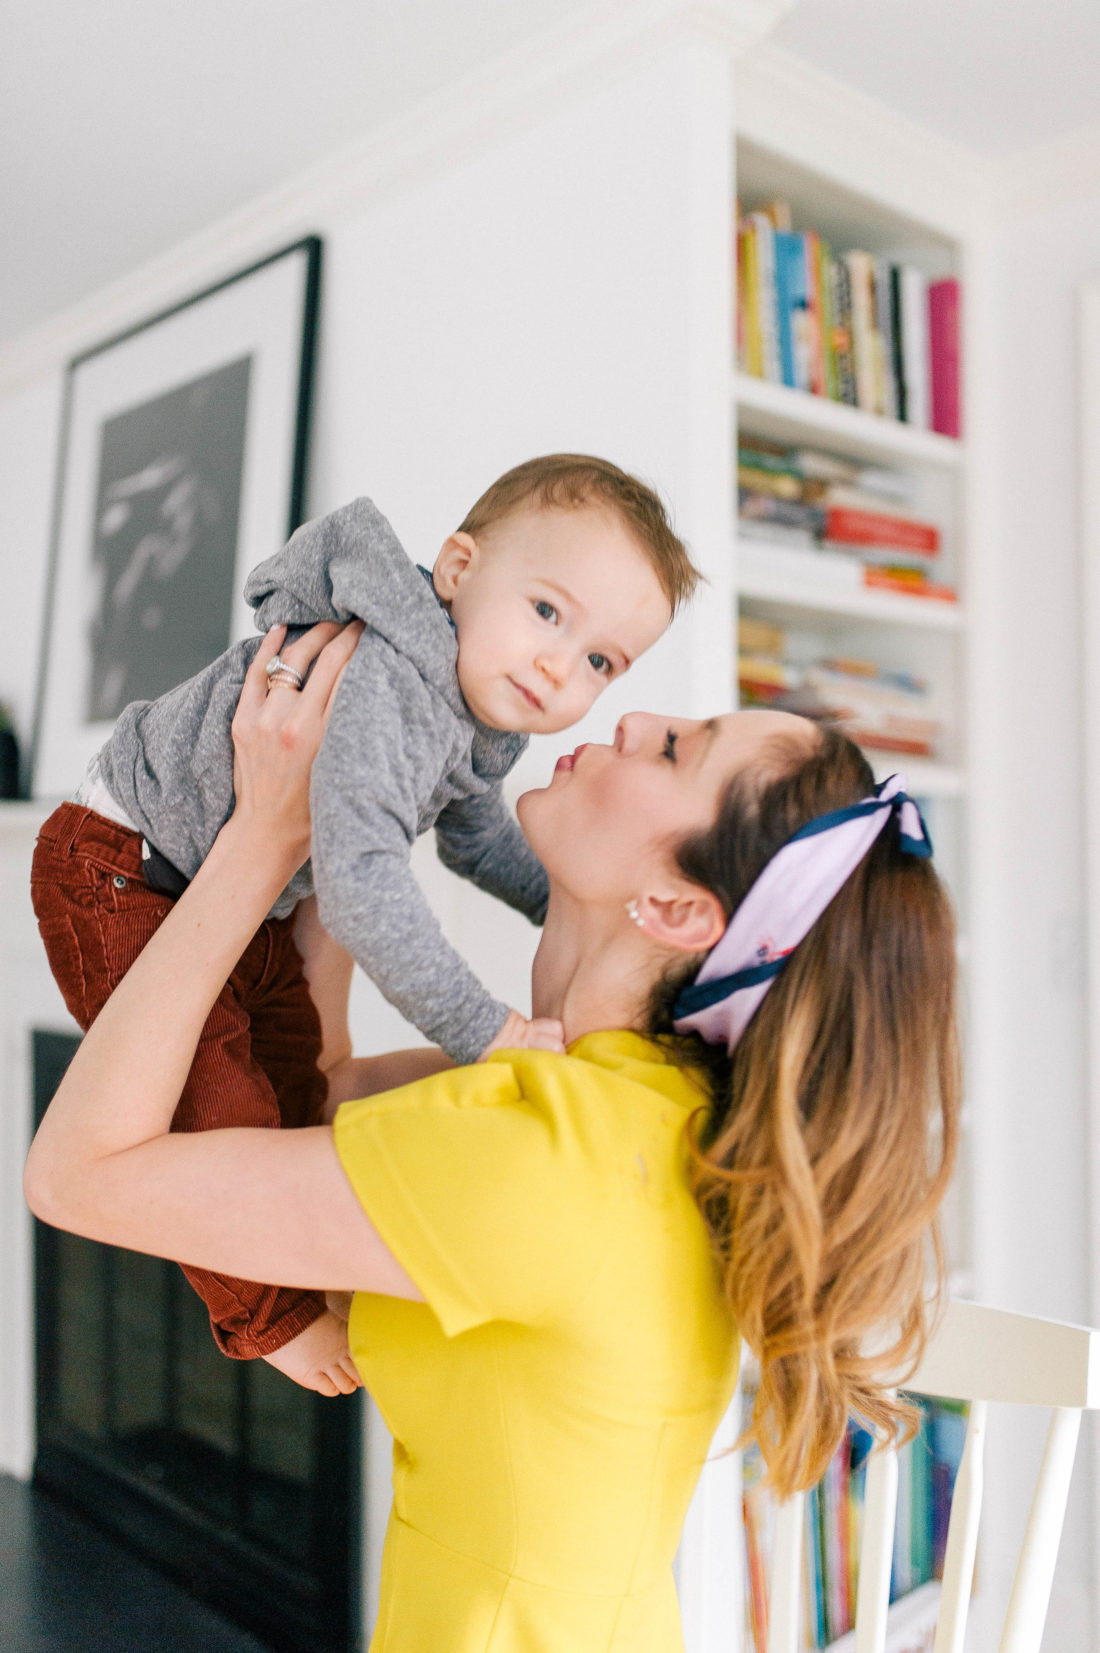 Eva Amurri Martino wears a yellow dress and lifts son Major up in her arms to kiss him